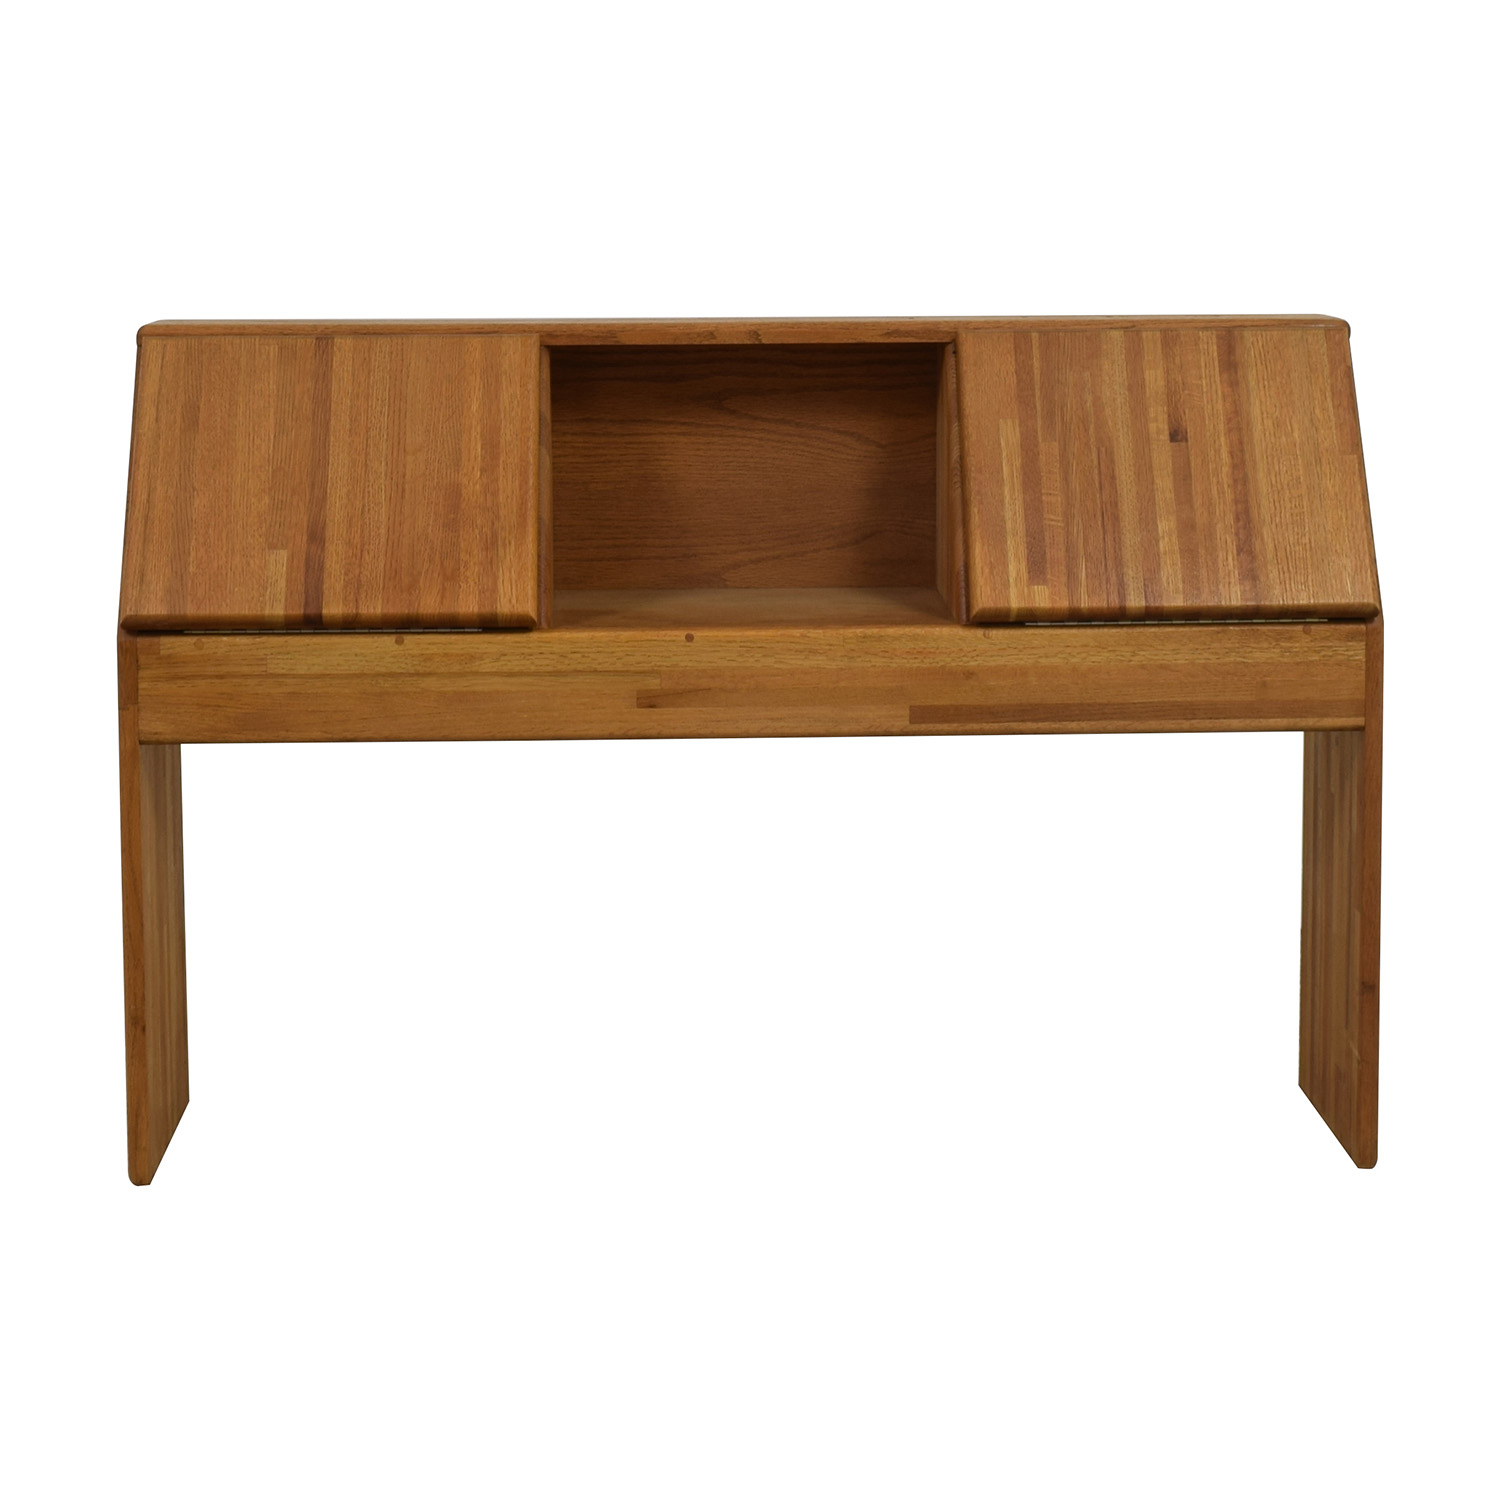 California Oak Book Shelf Desk for sale